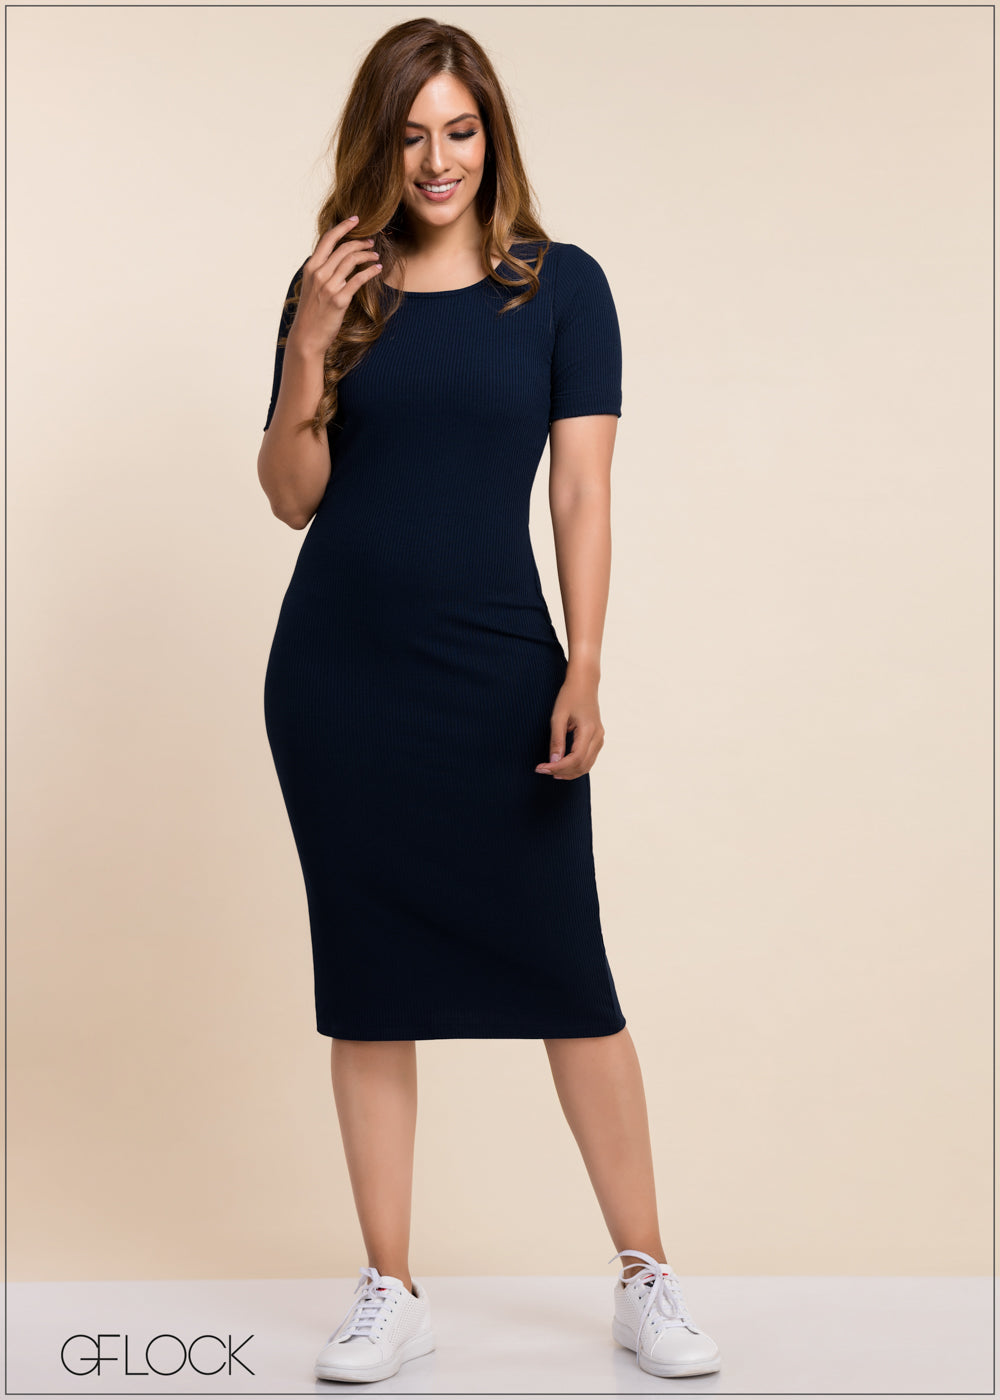 Rib Bodycon Dress - GFLOCK.LK